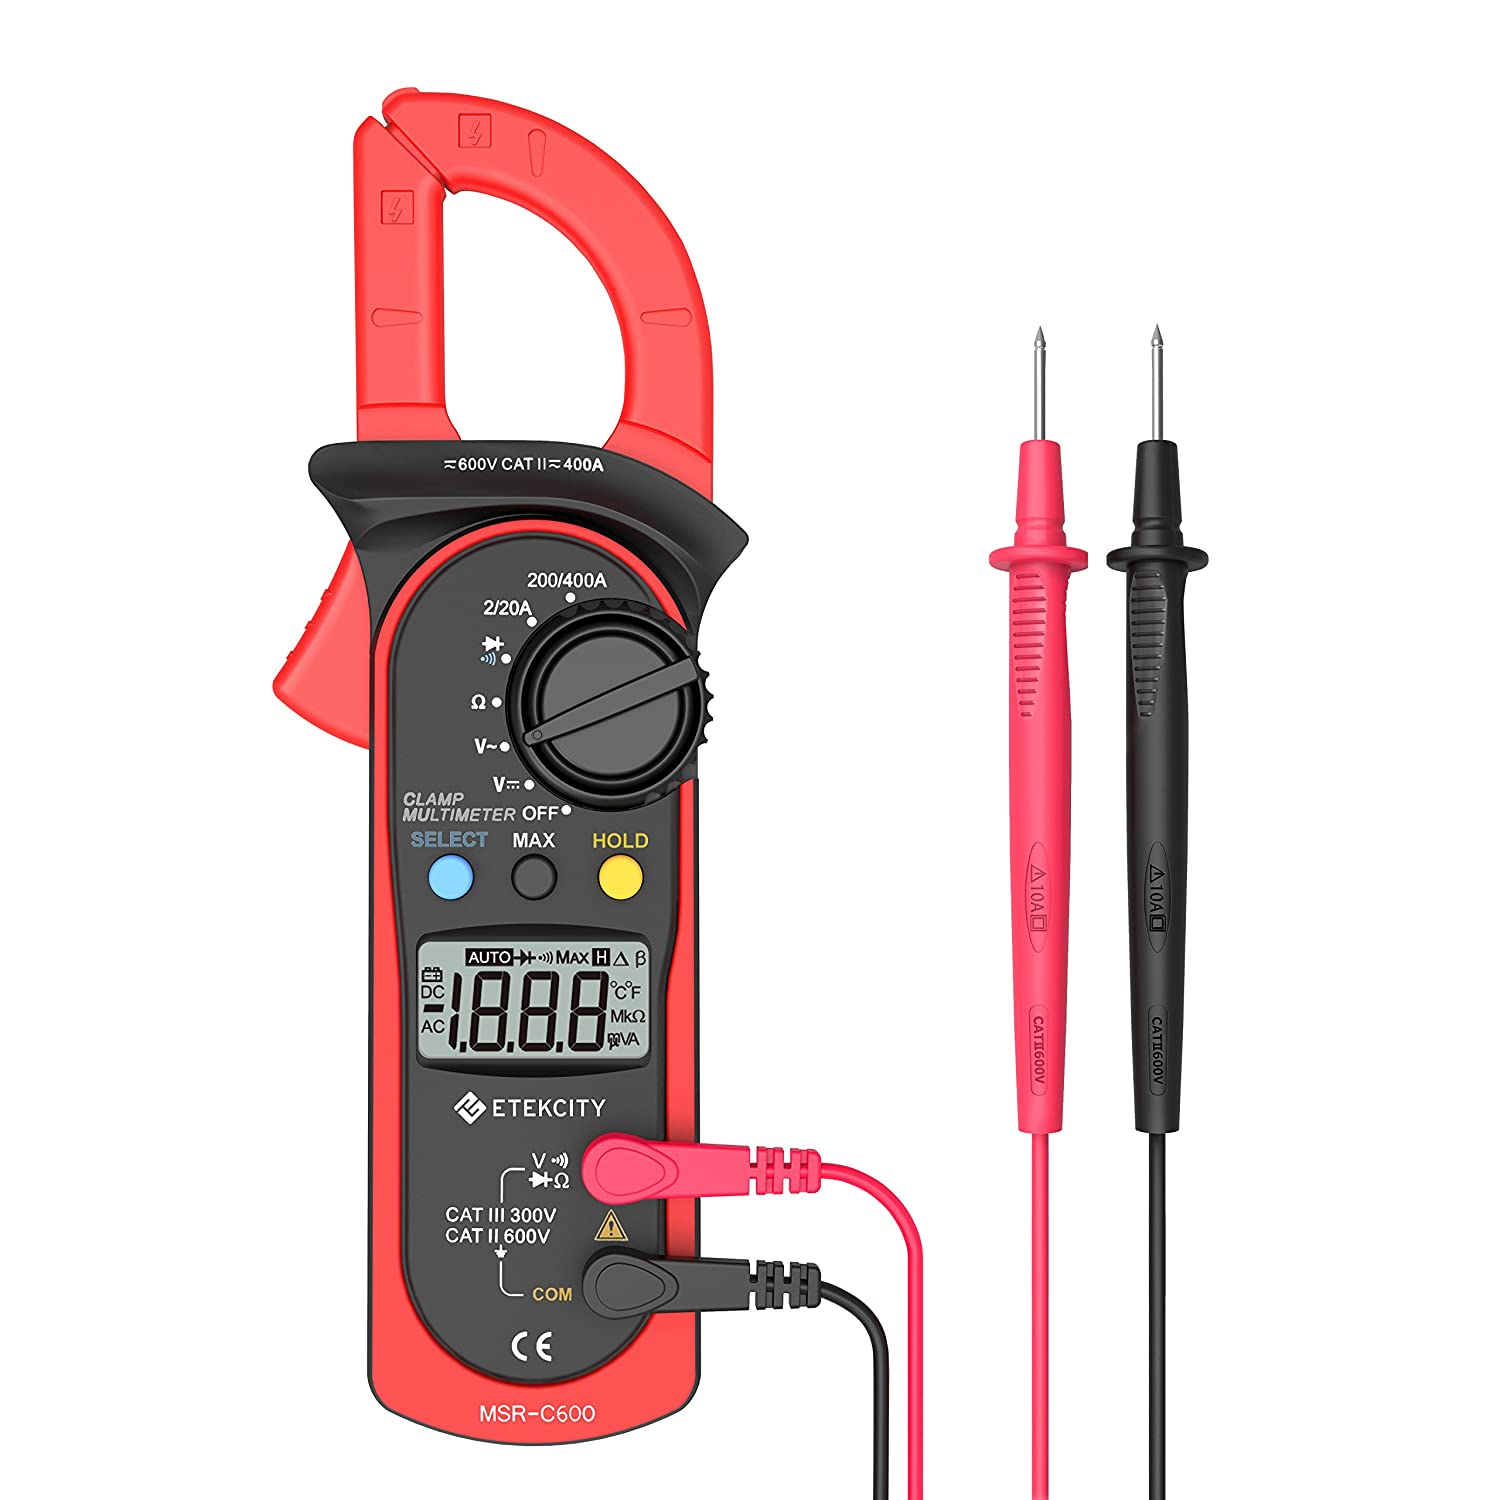 Etekcity MSR-C600 Digital Clamp Meter Multimeters , Auto-Ranging Multimeter AC/DC voltmeter with Voltage, AC Current, Amp, Volt, Ohm, Diode and Resistance Test Tester